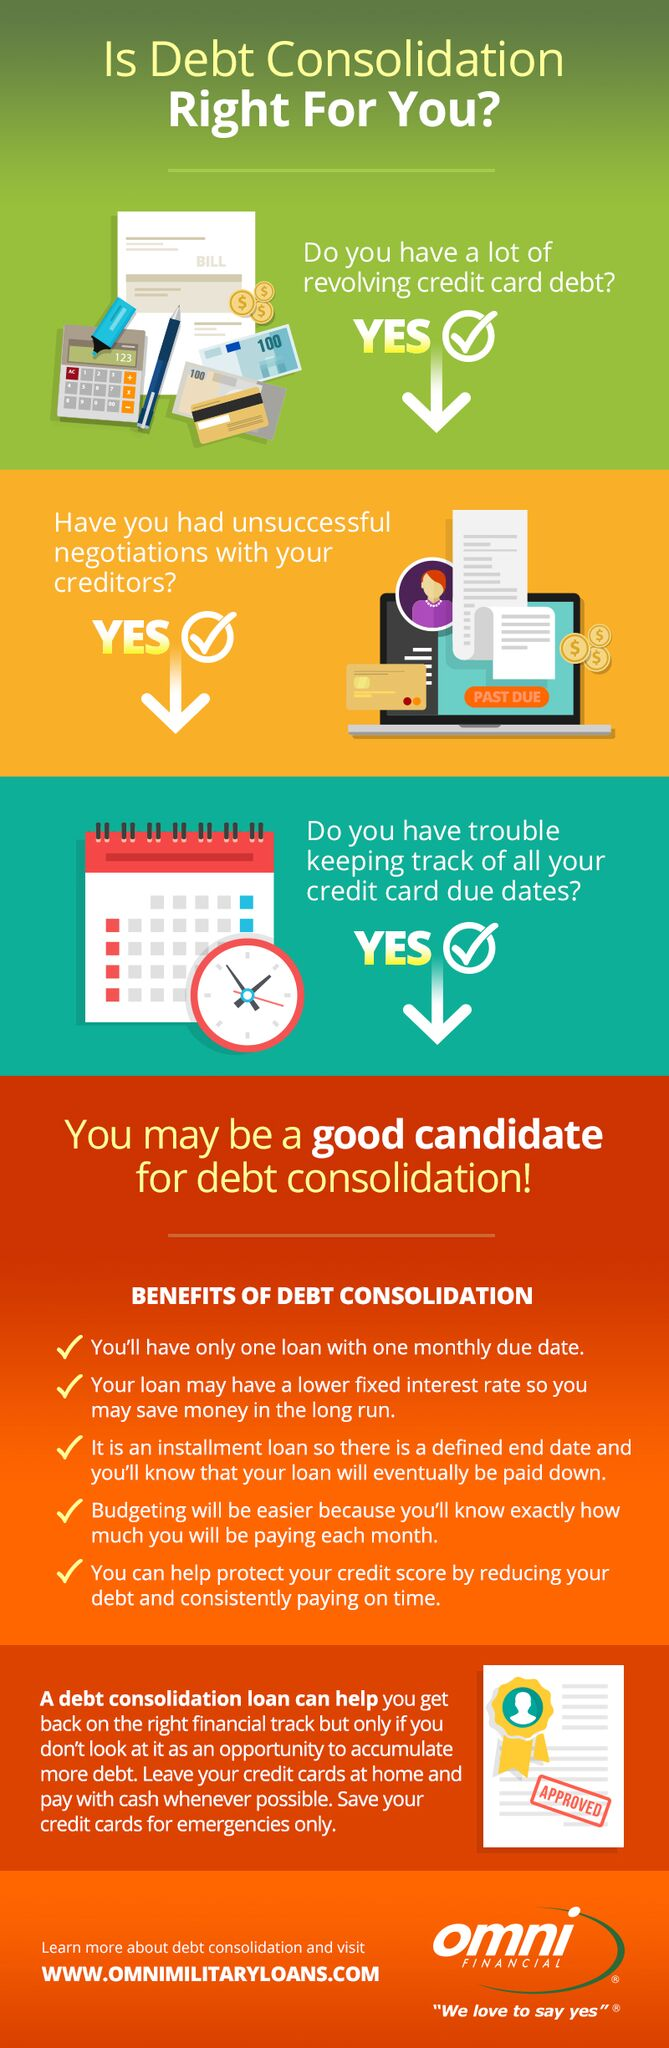 Should You Consider a Debt Consolidation Loan?